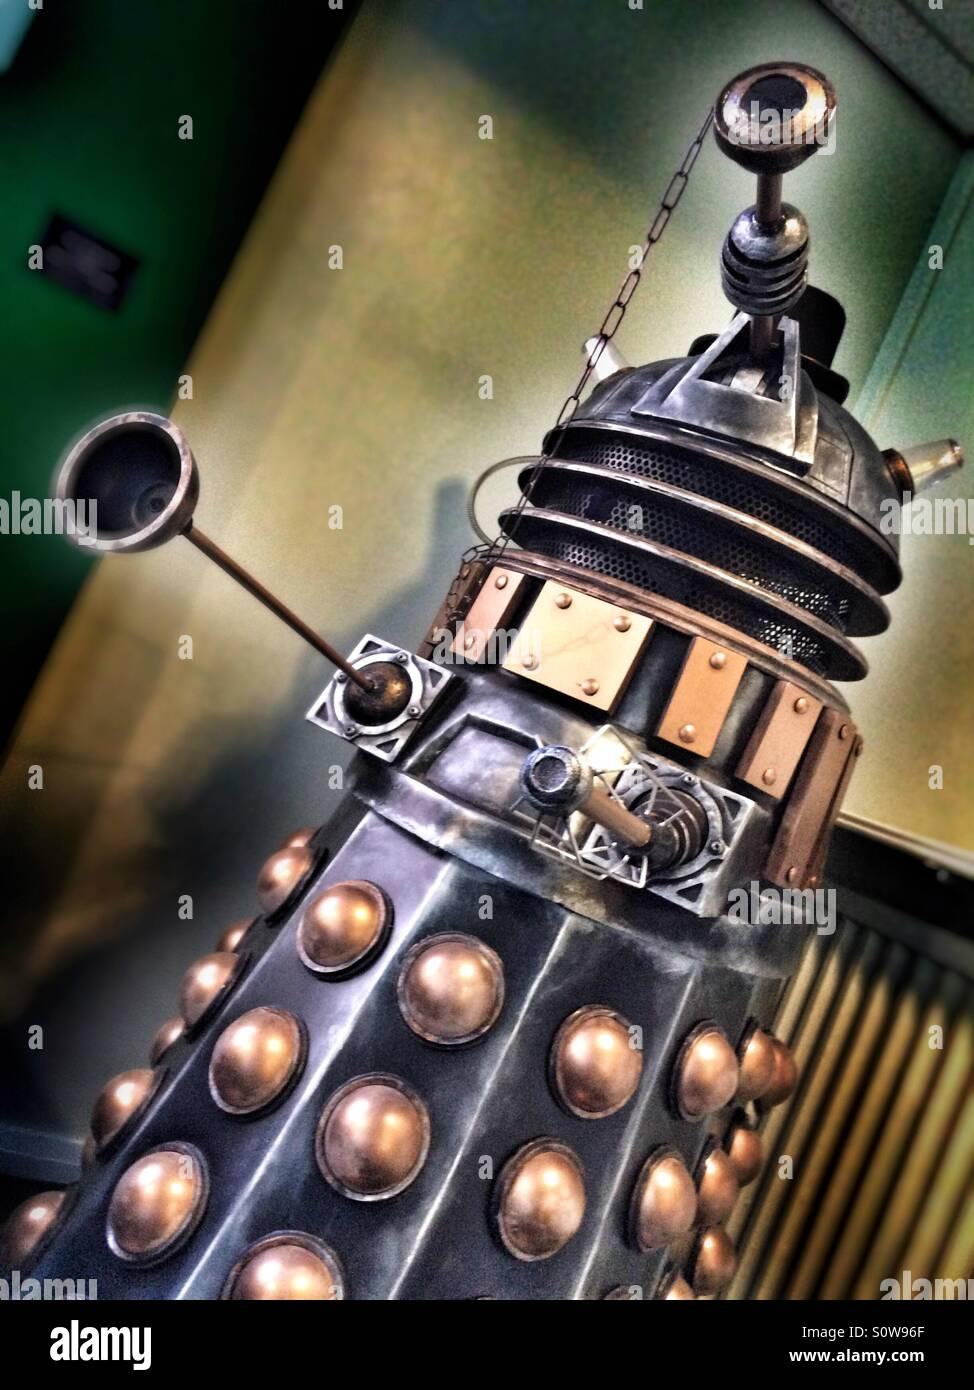 Dalek from BBC Doctor Who TV Show - Stock Image